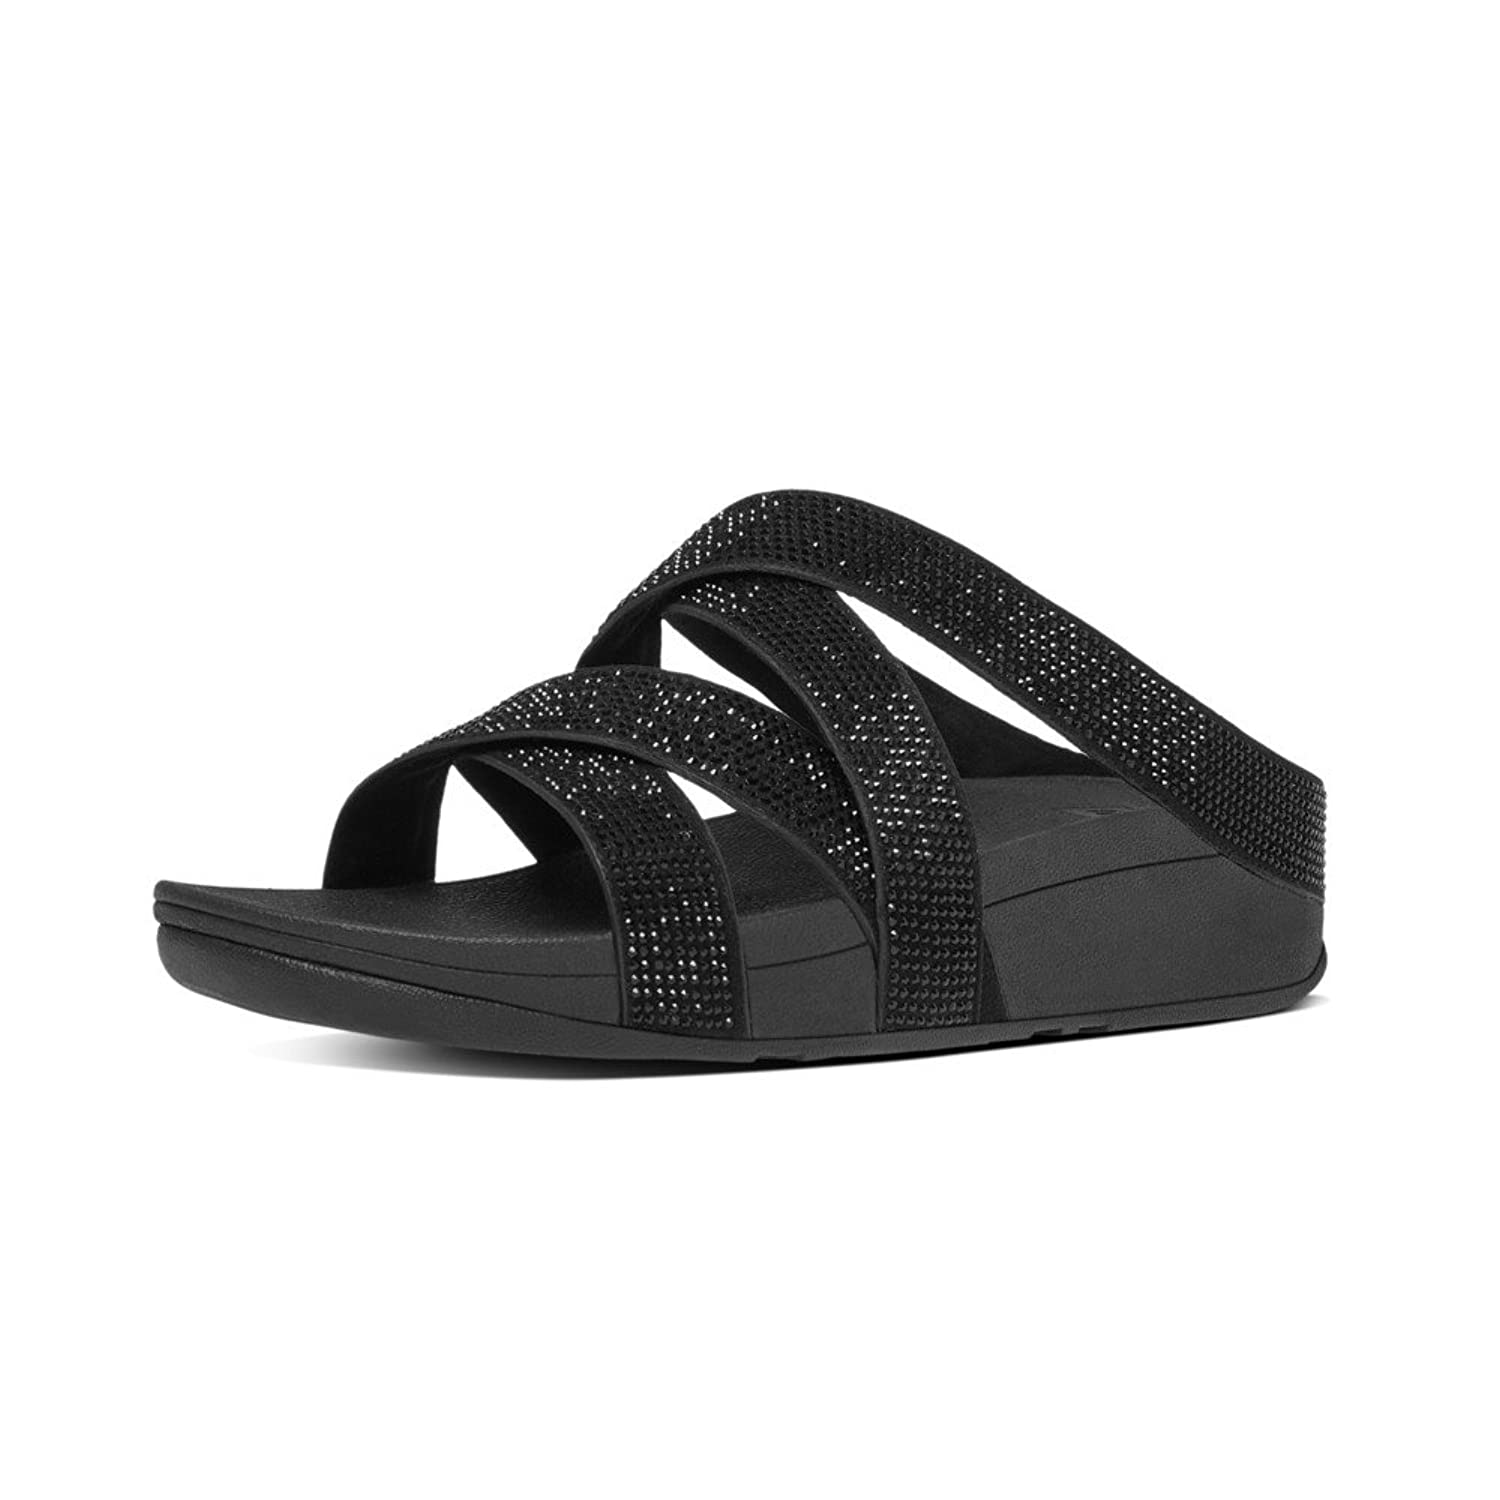 65d66b45e37527 Fitflop Women s Luna Pop Gladiator Sandals Open-Toe  Amazon.co.uk ...